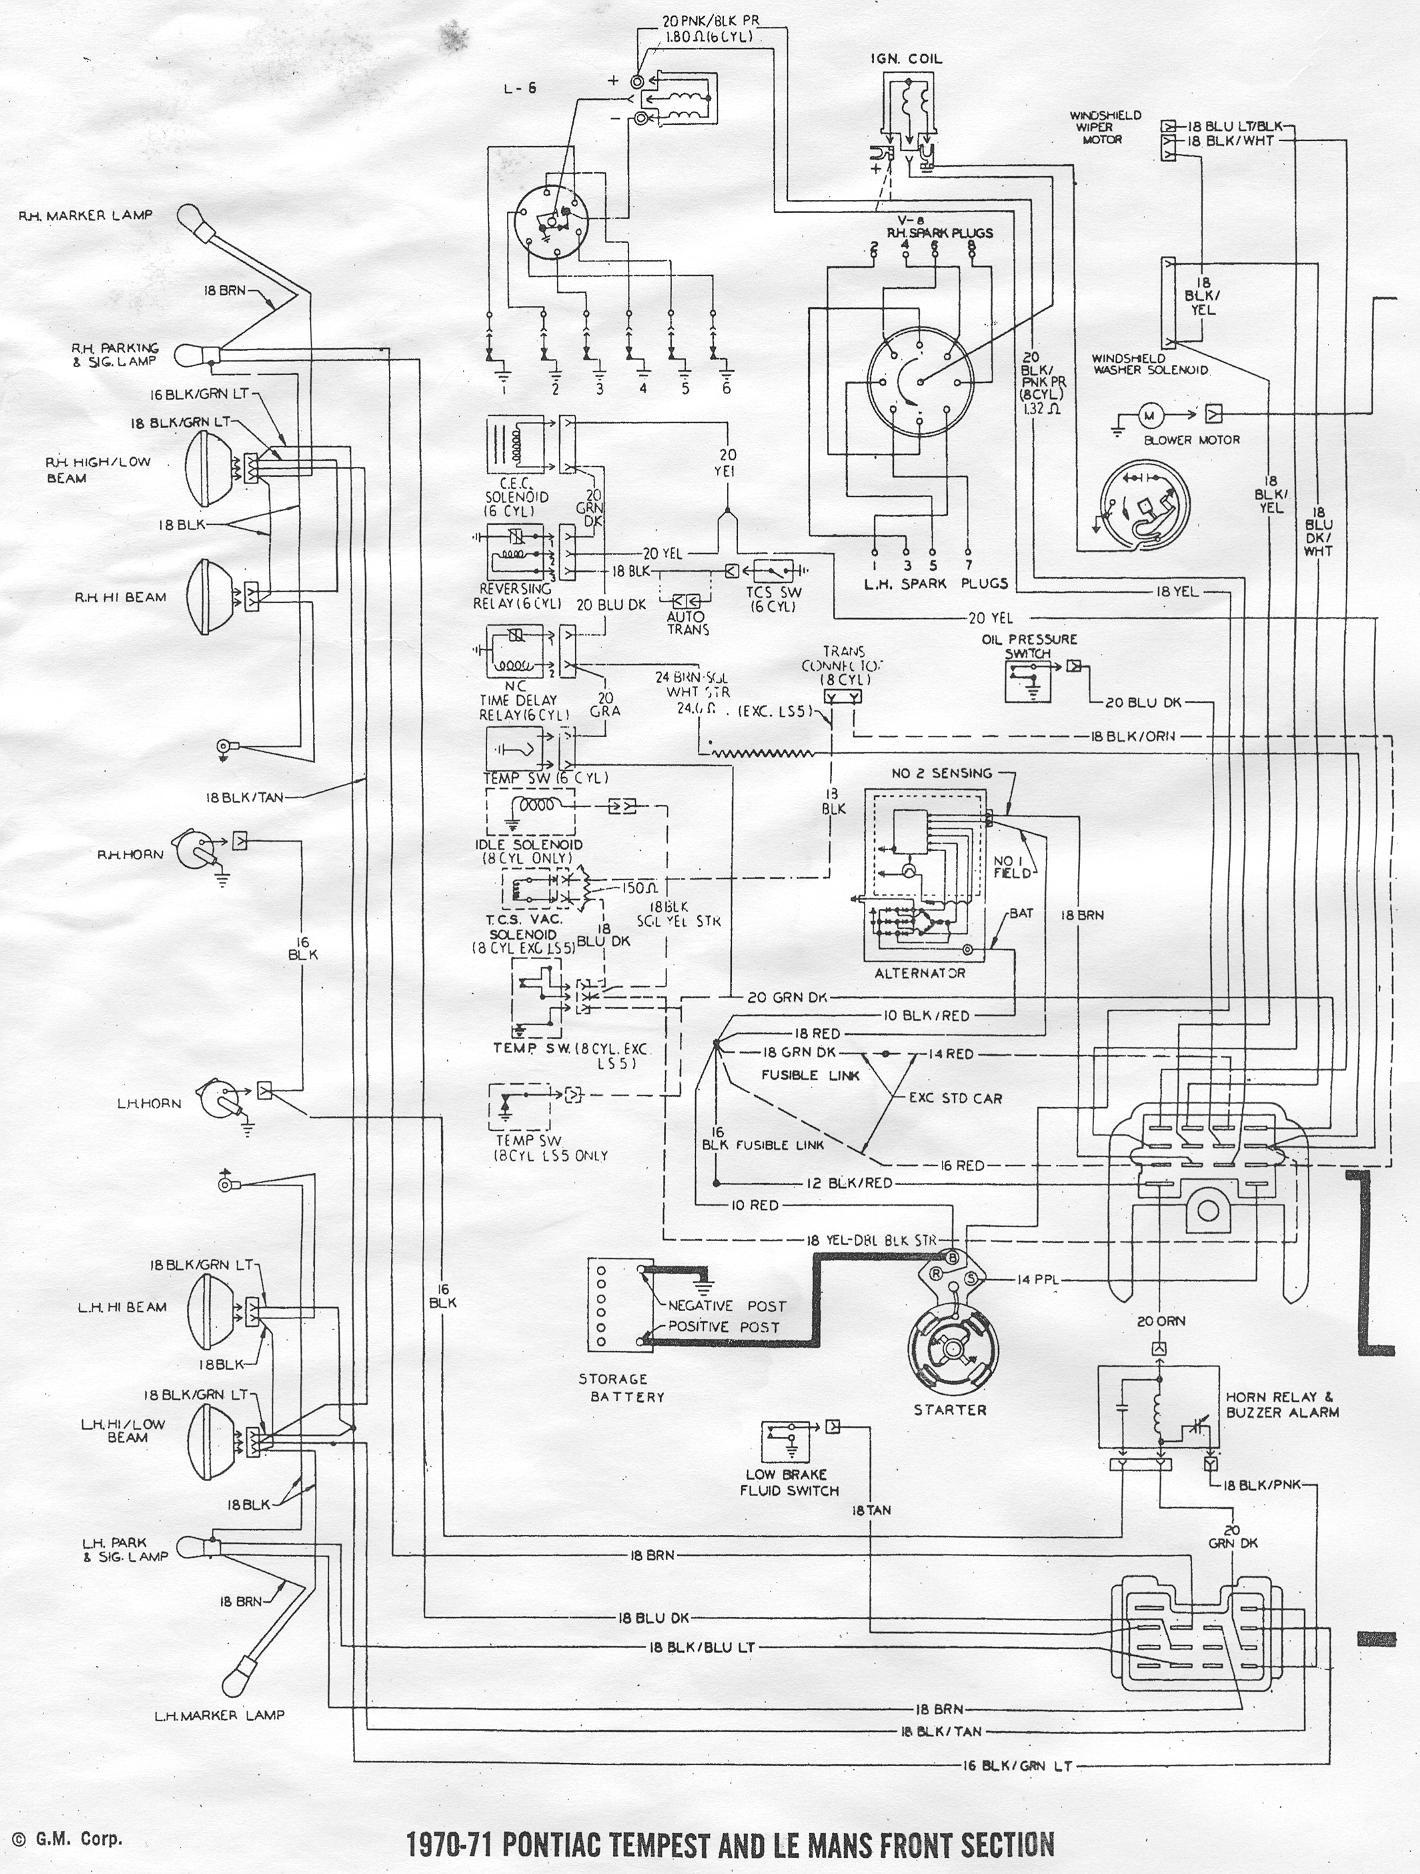 1975 corvette starter wiring diagram wiring diagram and hernes 1975 chevy corvette wiring diagram and hernes